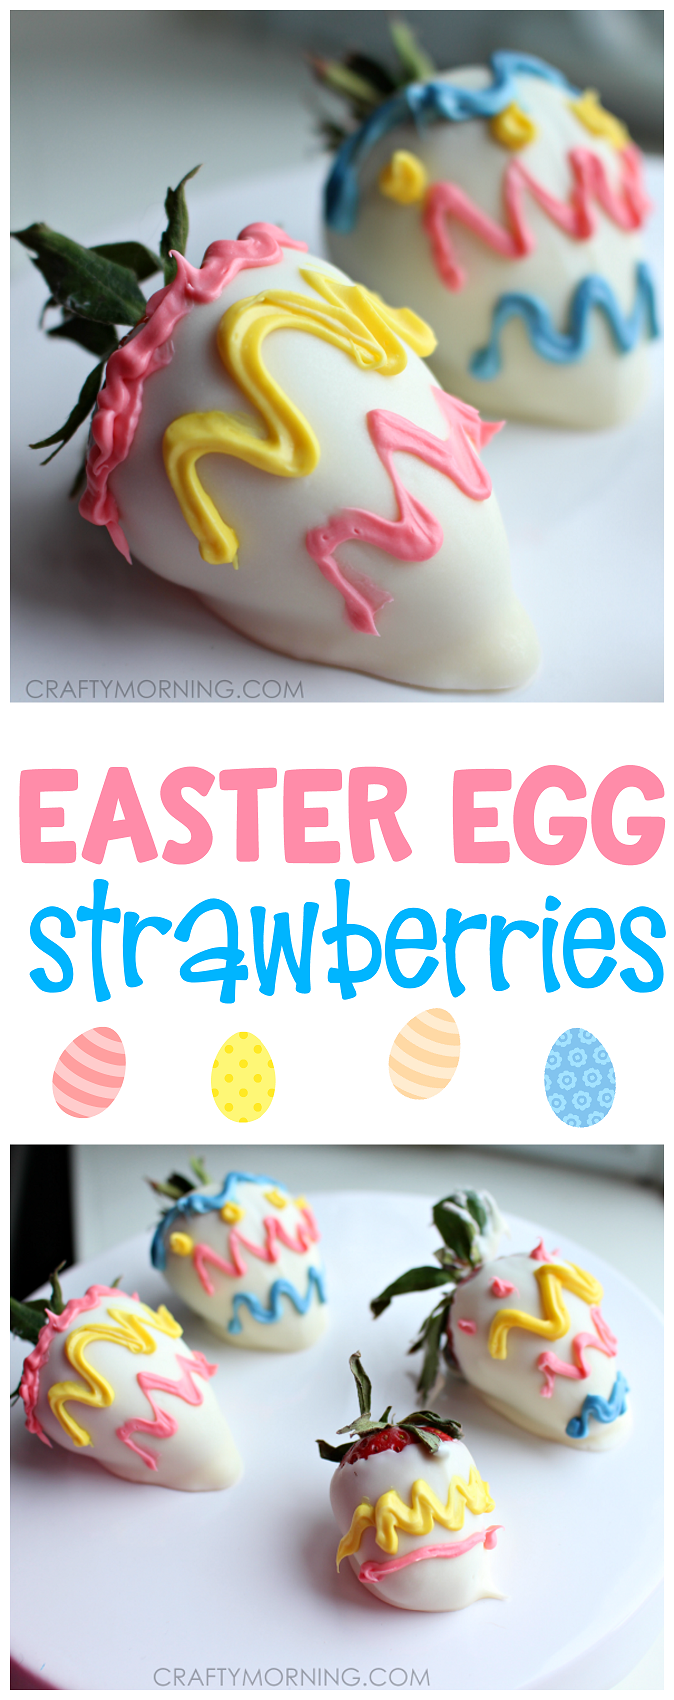 Chocolate Dipped Easter Egg Strawberries - Crafty Morning